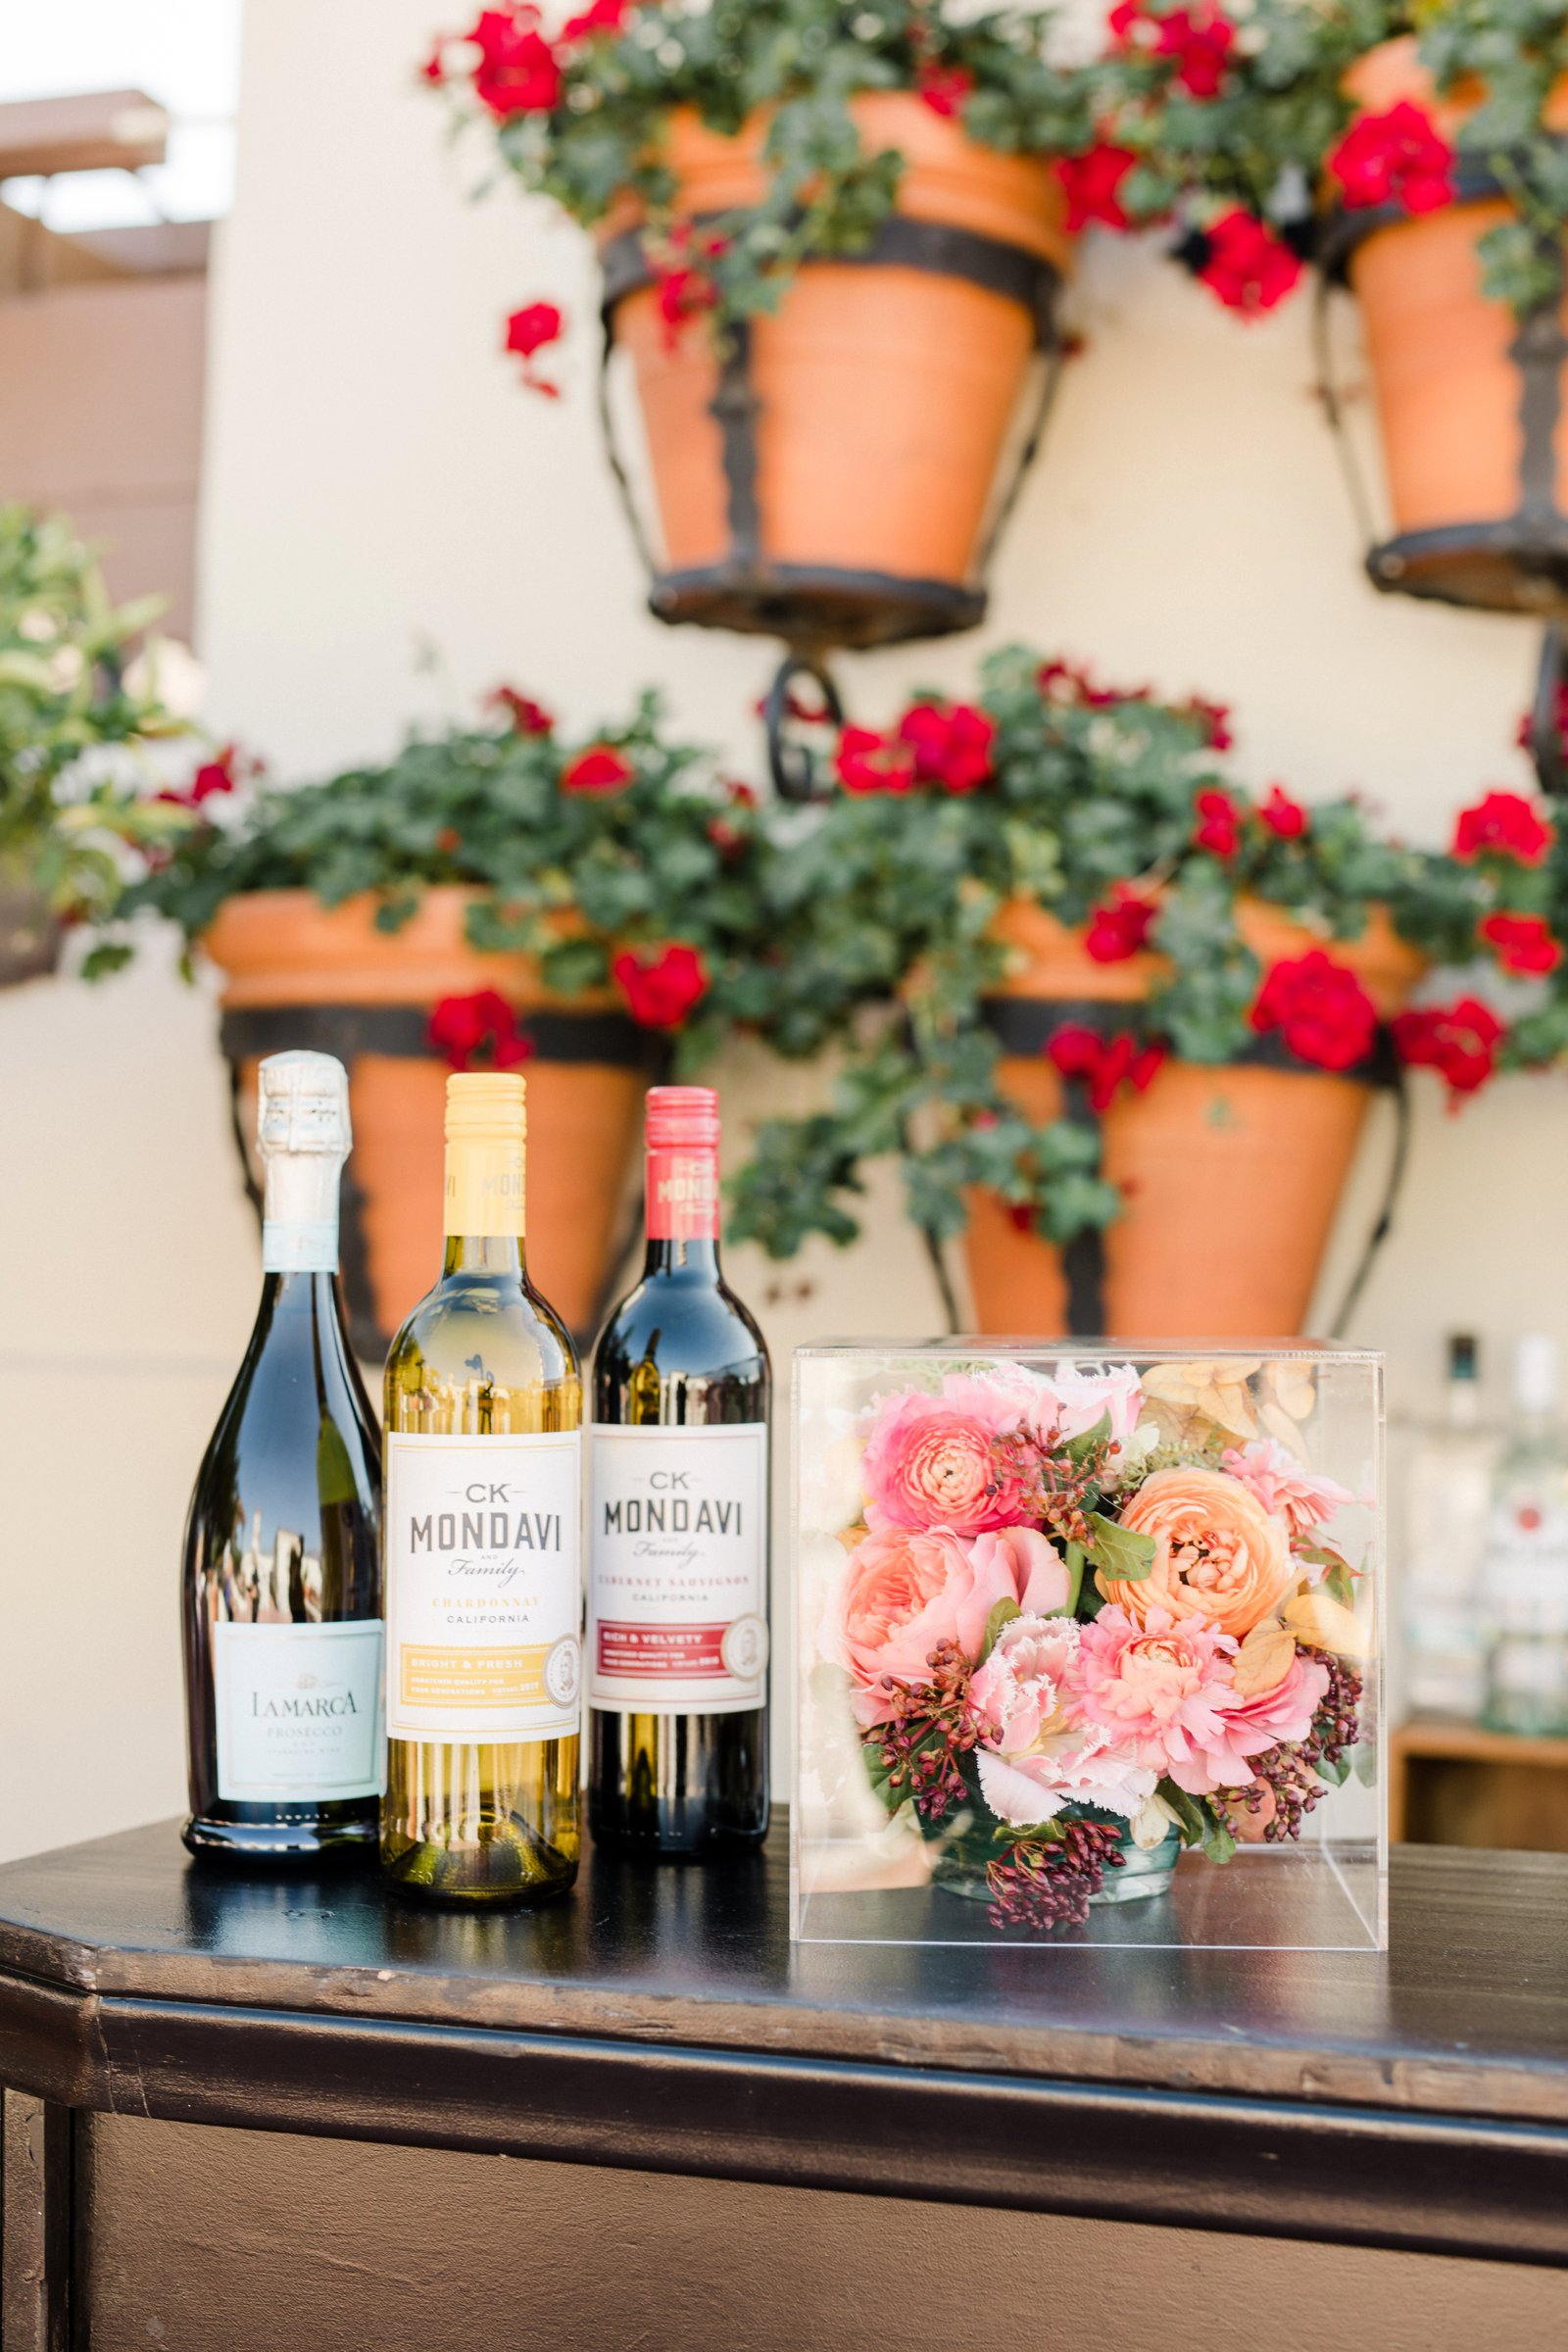 www.santabarbarawedding.com | Anna Delores Photography | Kimpton Canary Hotel | Onyx + Redwood | Idlewild Floral | Wine Refreshments and Florals